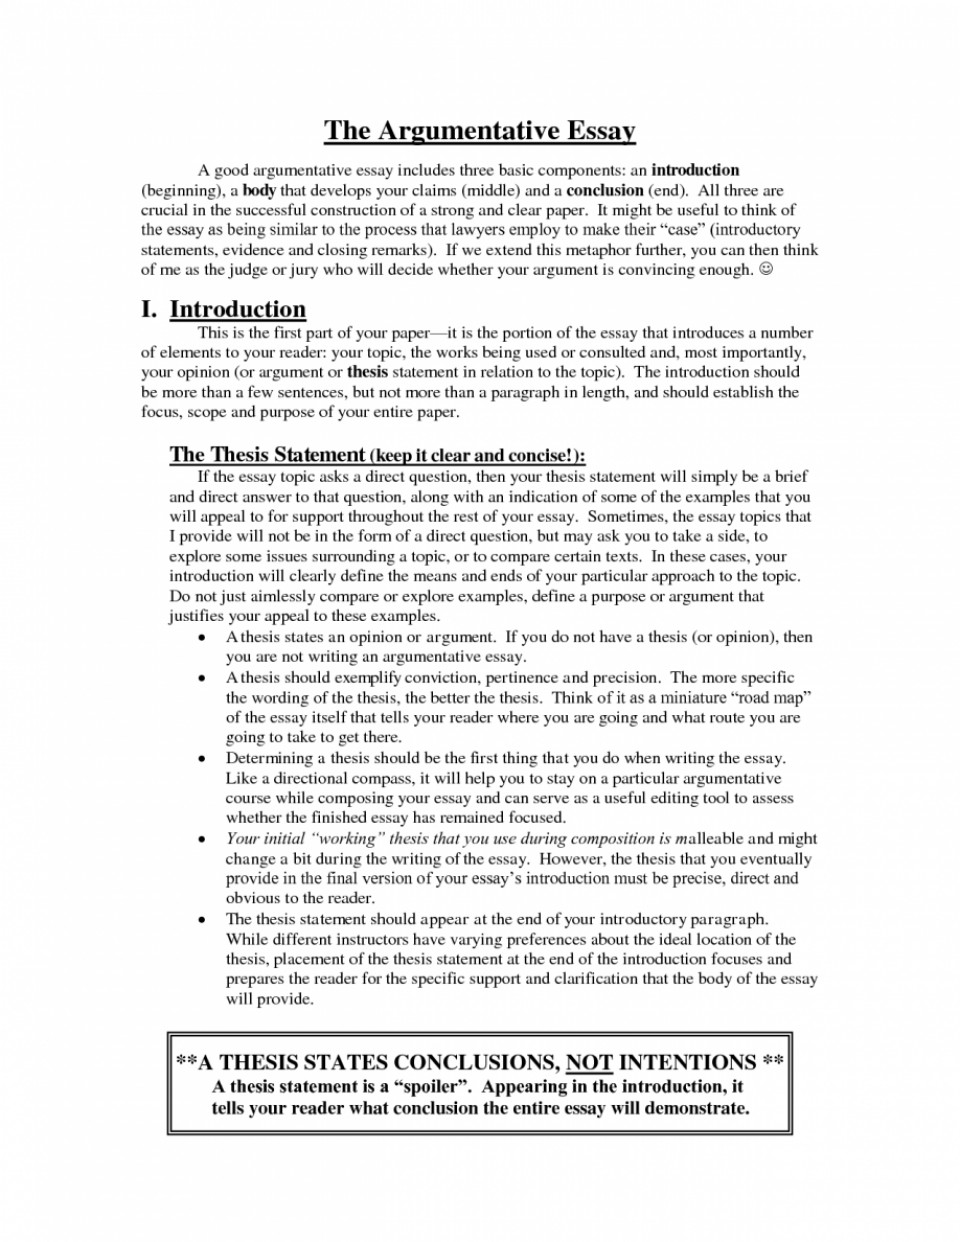 005 Argumentative Essay Introduction Examples Example Help Writing An College Good Persuasive Paragraph Image Ga Samples Personal Awesome Synthesis Outline 960